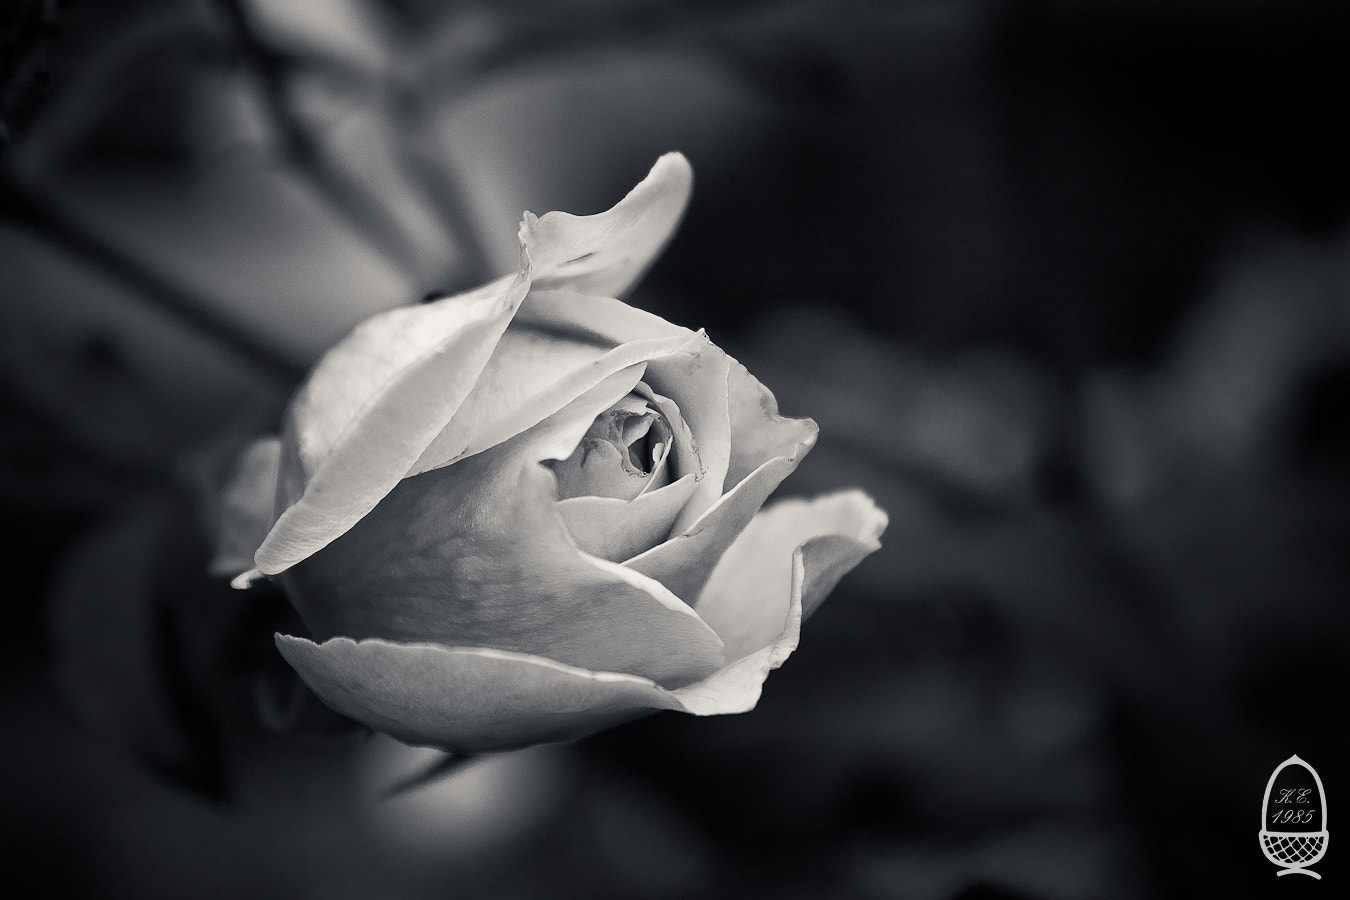 Photograph White rose by Katrin Eichleitner on 500px